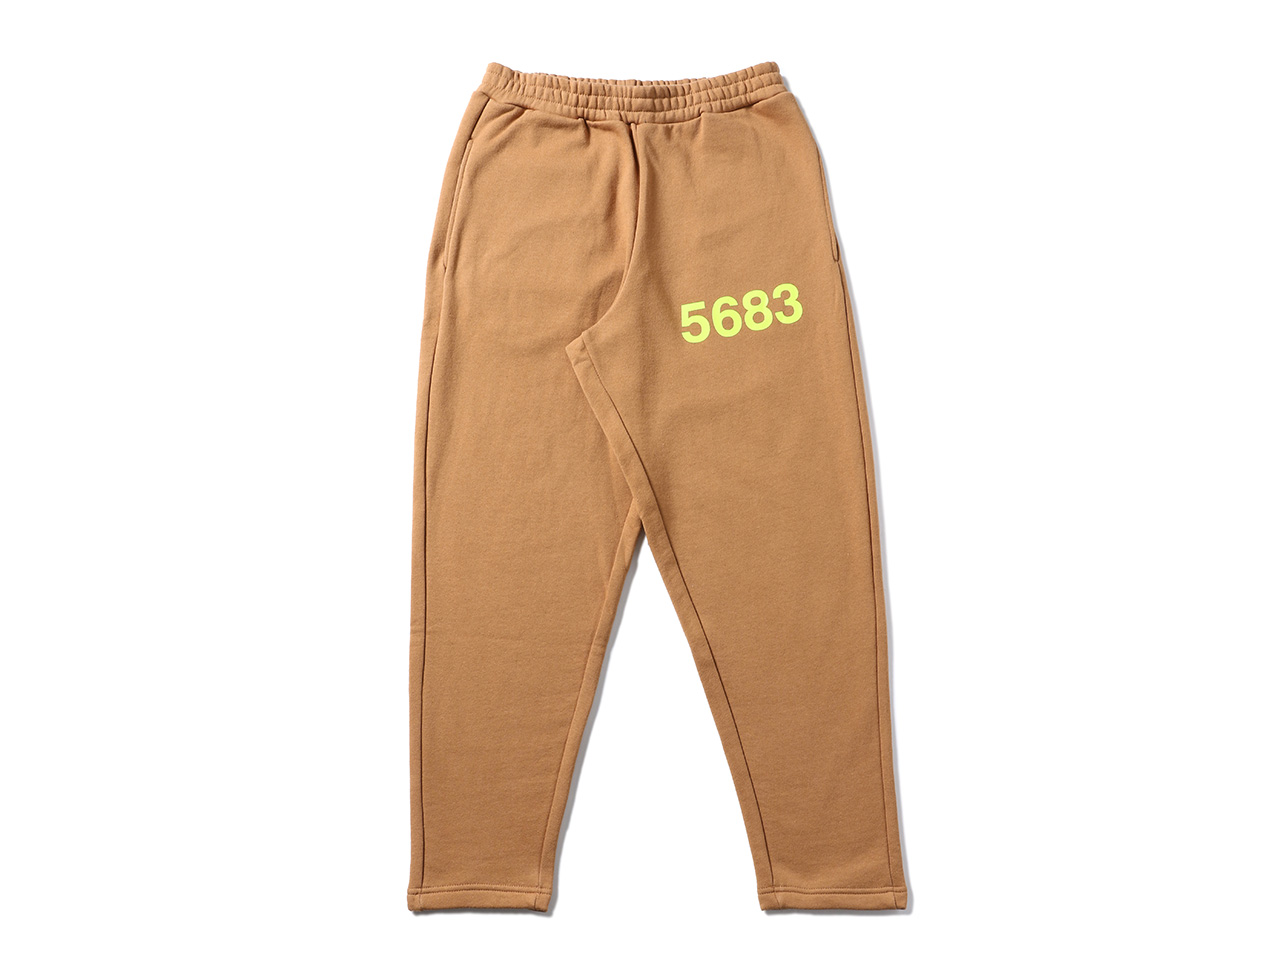 【10%OFF!】WILLY CHAVARRIA hmlWILLY RUSSEL PANTS(207474)【ウィリーチャバリア】【メンズファッション】【ボトムス】【パンツ】【ストリート】